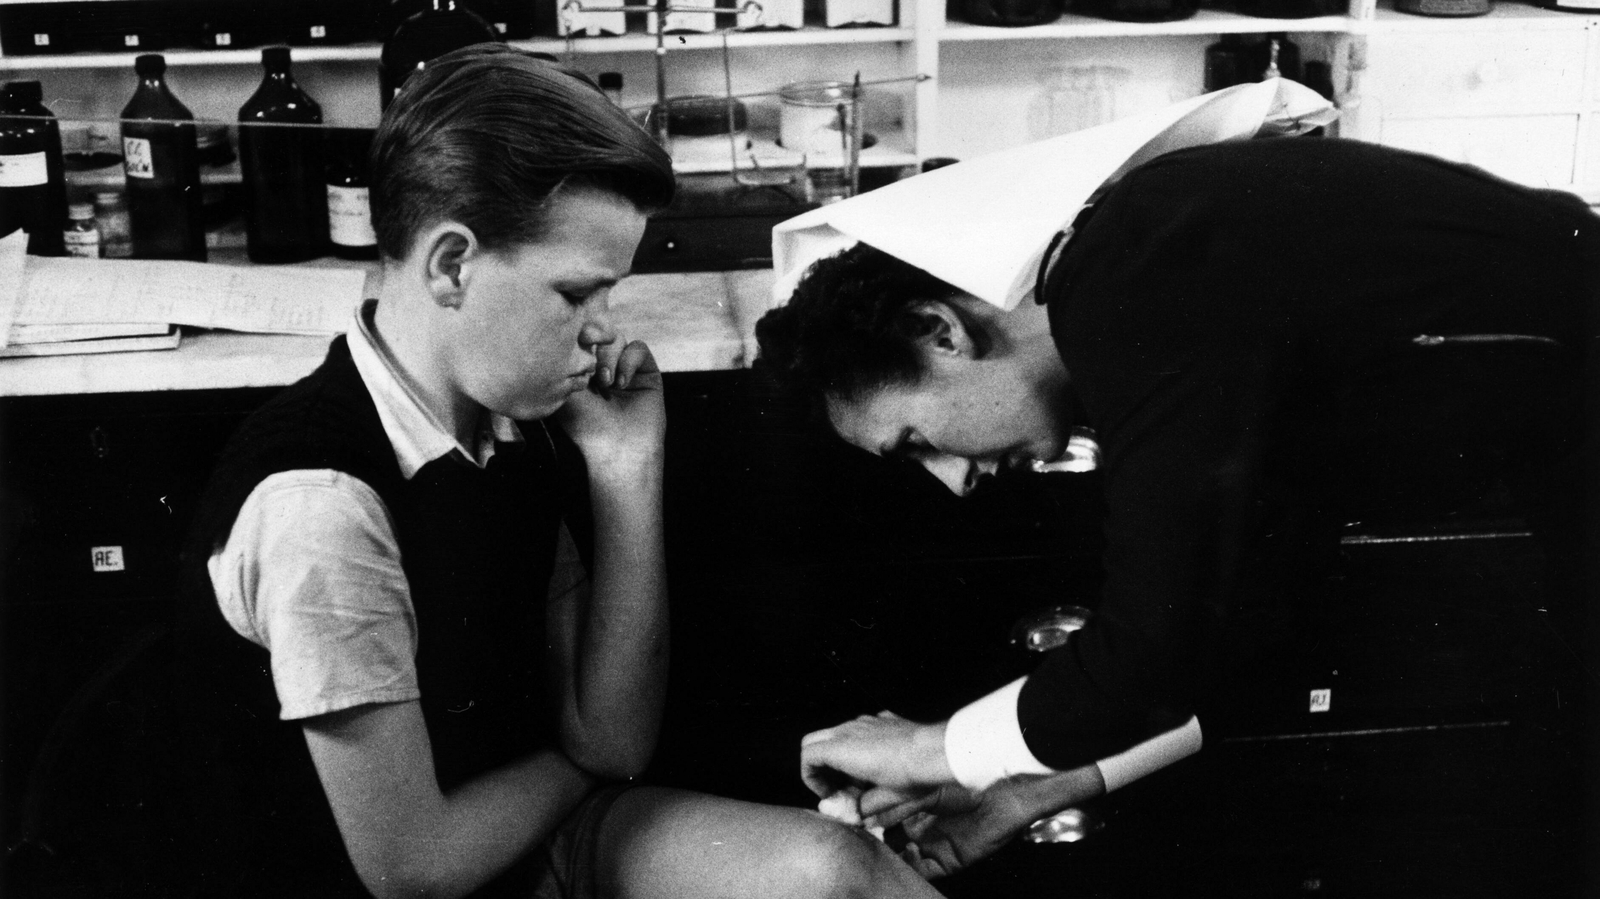 Image - A ship's nurse attending to a stowaway in 1956.  Photo: Bert Hardy/ Picture Post/Getty Images